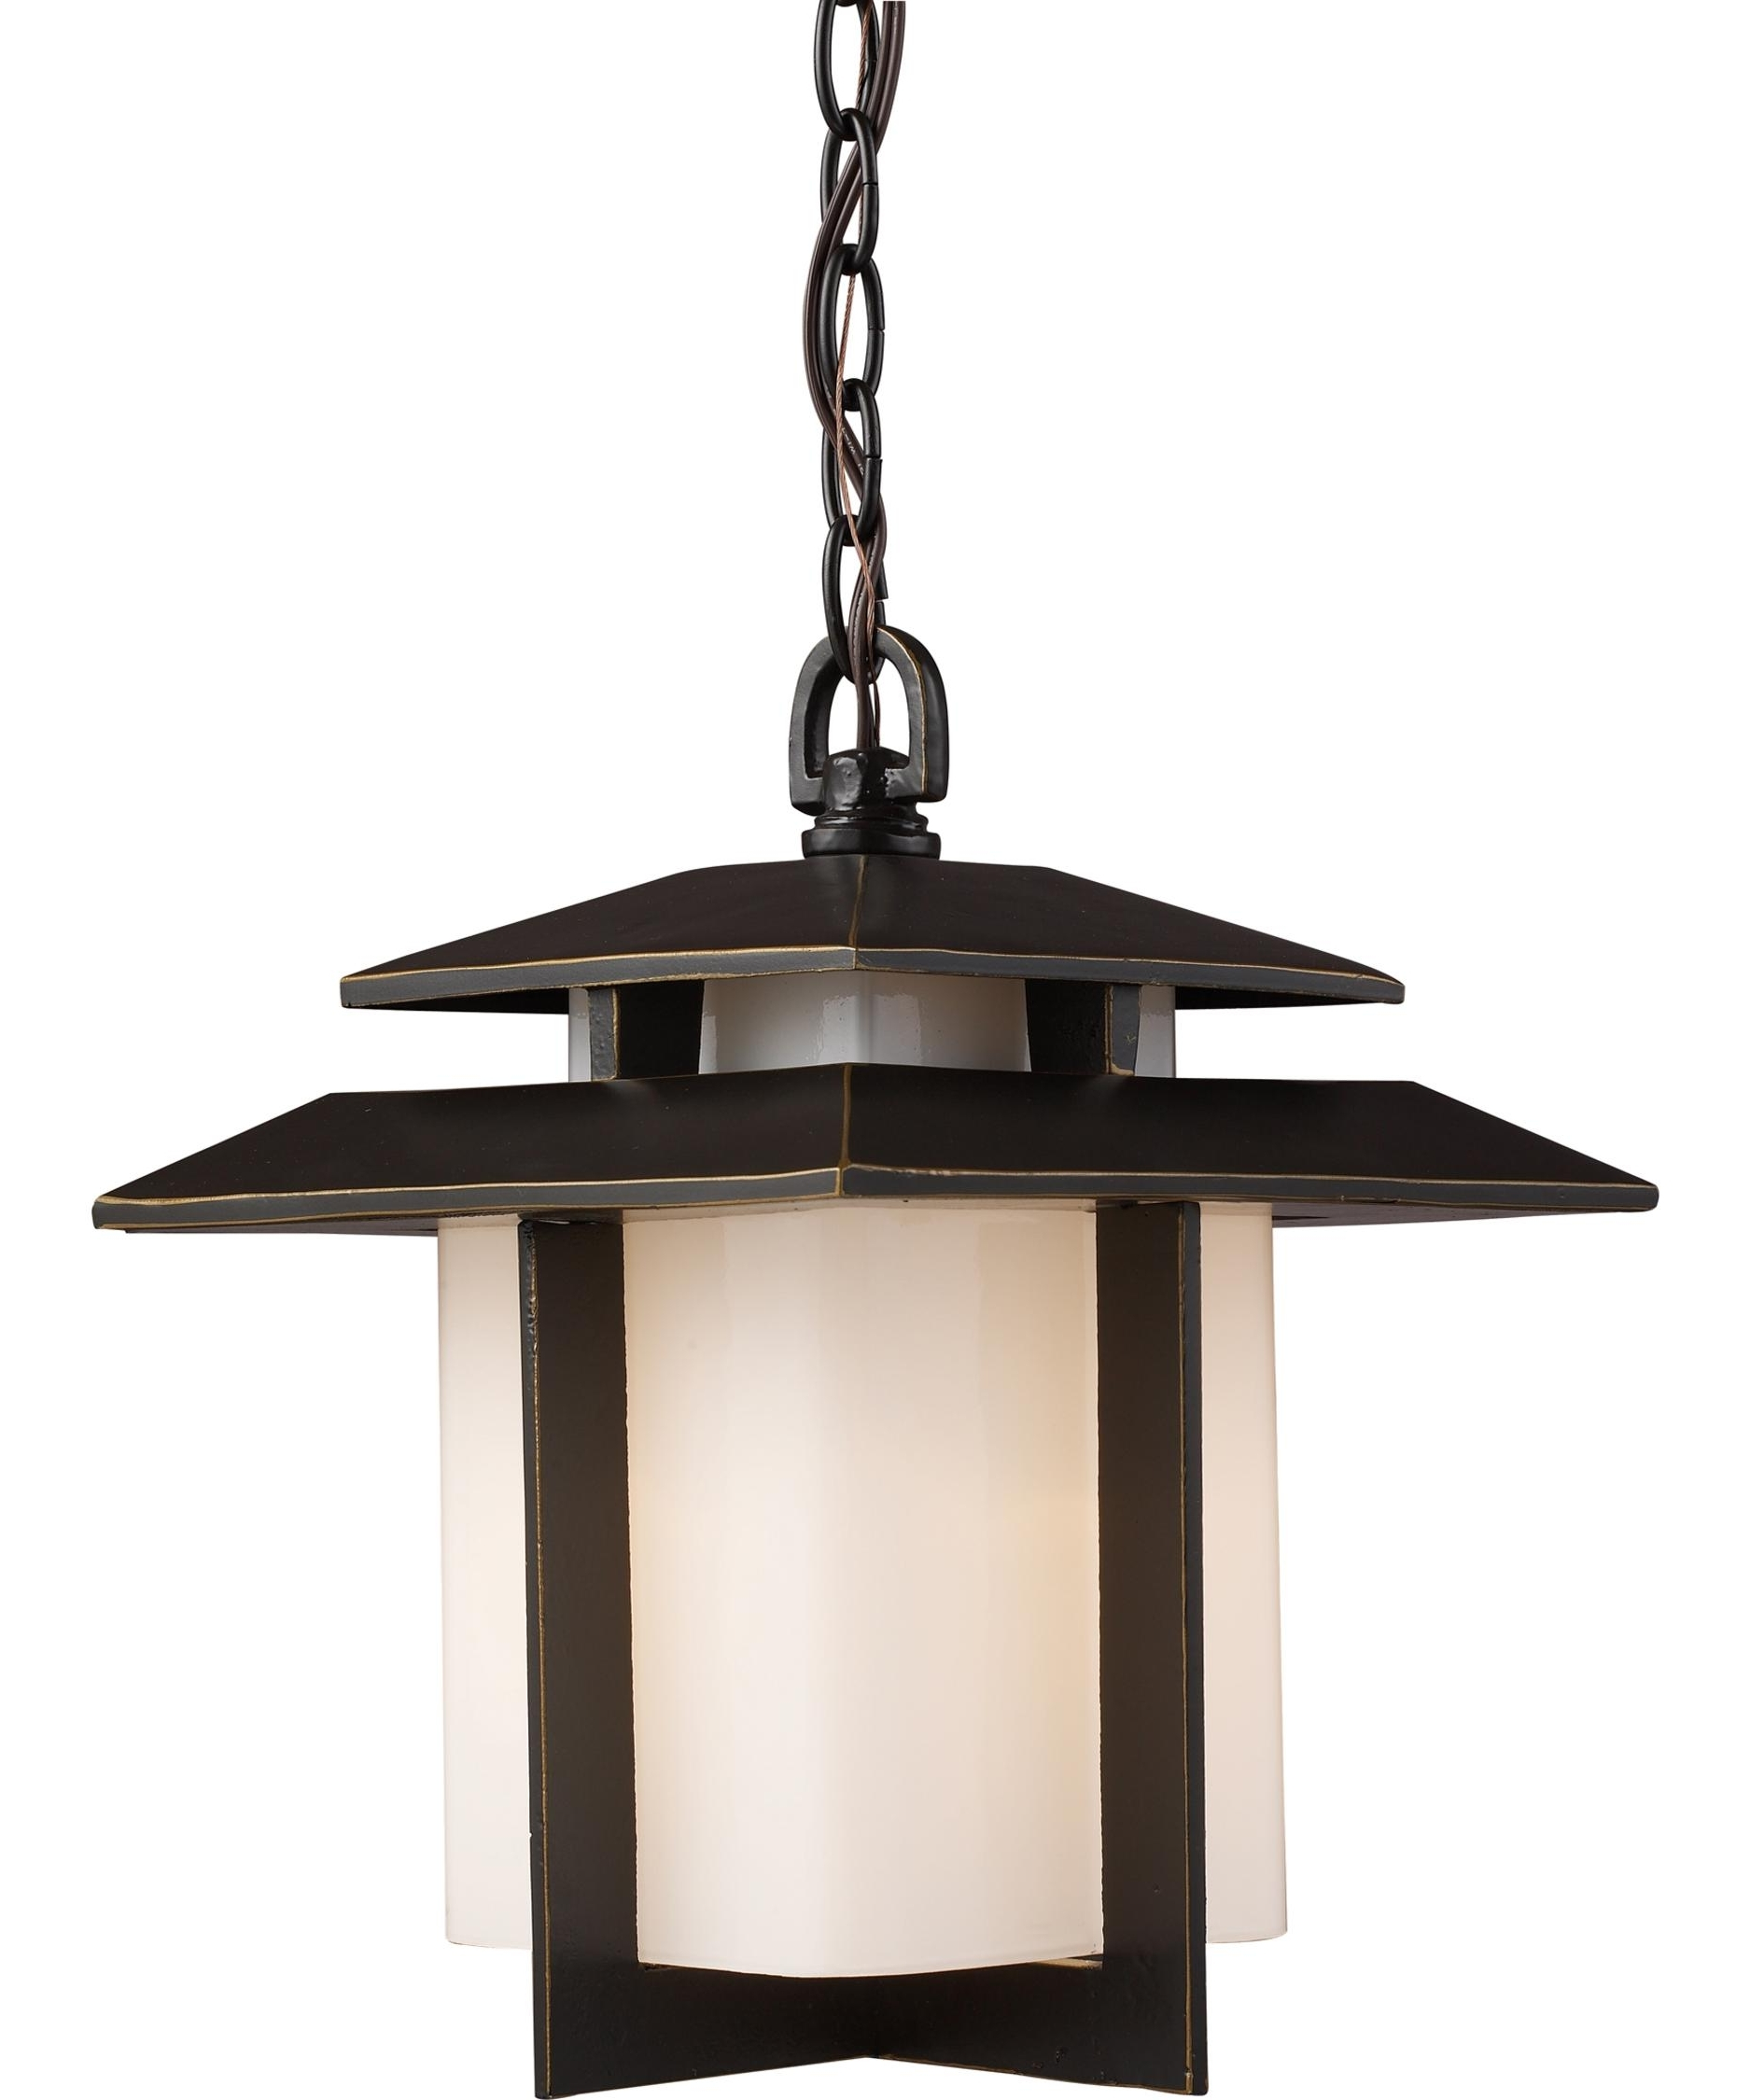 Preferred Elk Lighting 42172 1 Kanso 10 Inch Wide 1 Light Outdoor Hanging With Outdoor Lighting Japanese Lanterns (View 13 of 20)